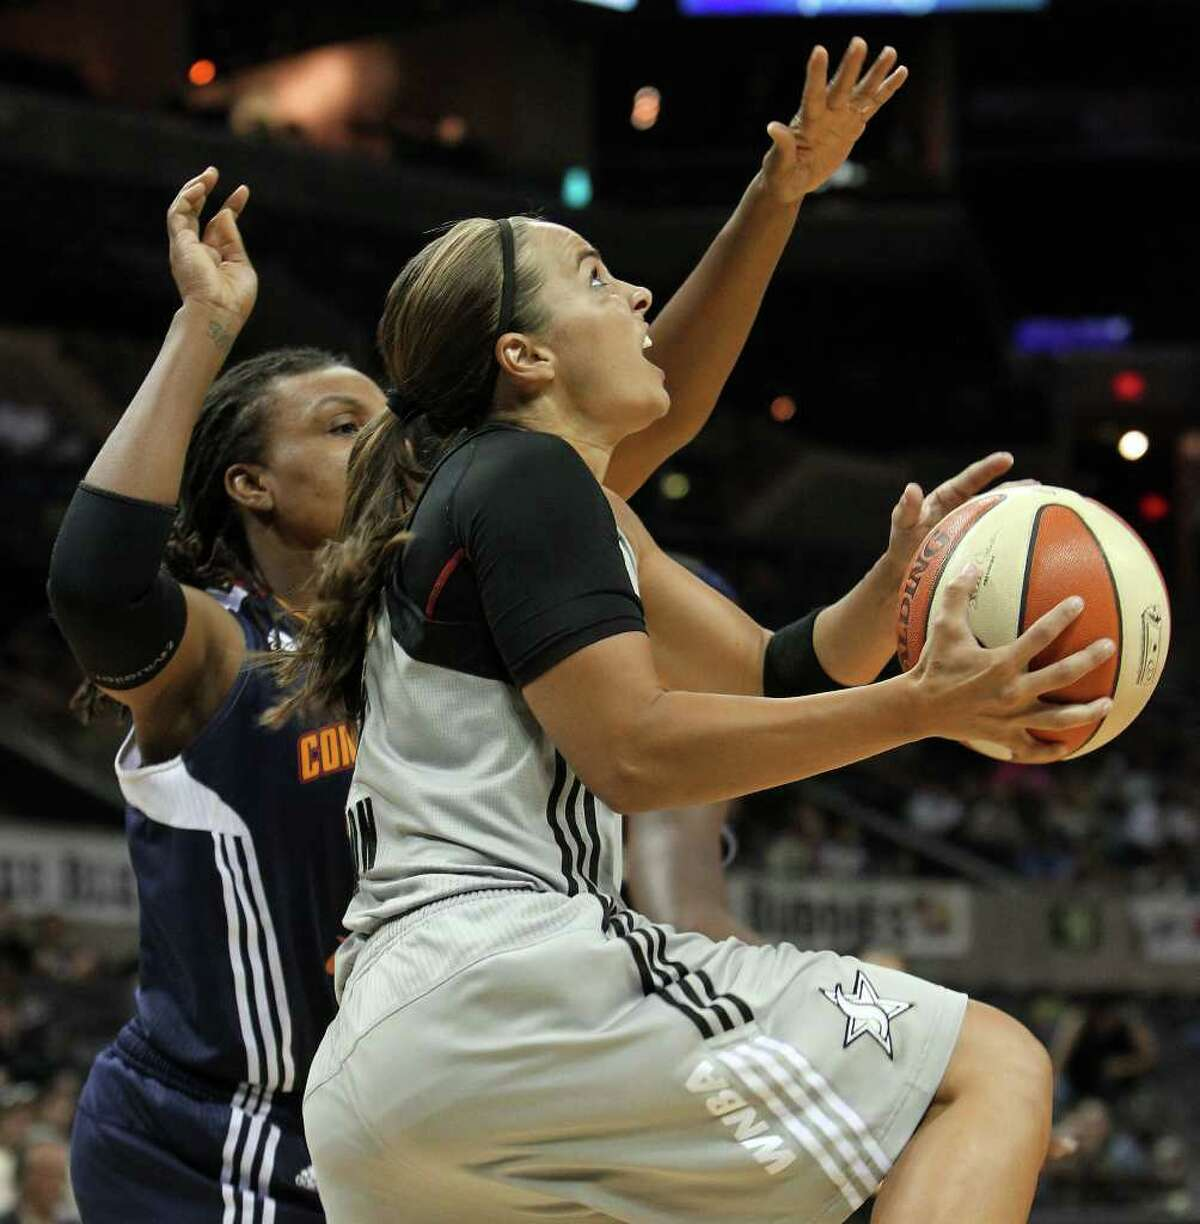 Silver Stars' Becky Hammon (25) goes up for shot to score her 4,998th and 4,999th points on her way to 5,000 points against Connecticut Suns' Tan White (14) in the first half at the AT&T Center on Tuesday, August 30, 2011. Kin Man Hui/kmhui@express-news.net